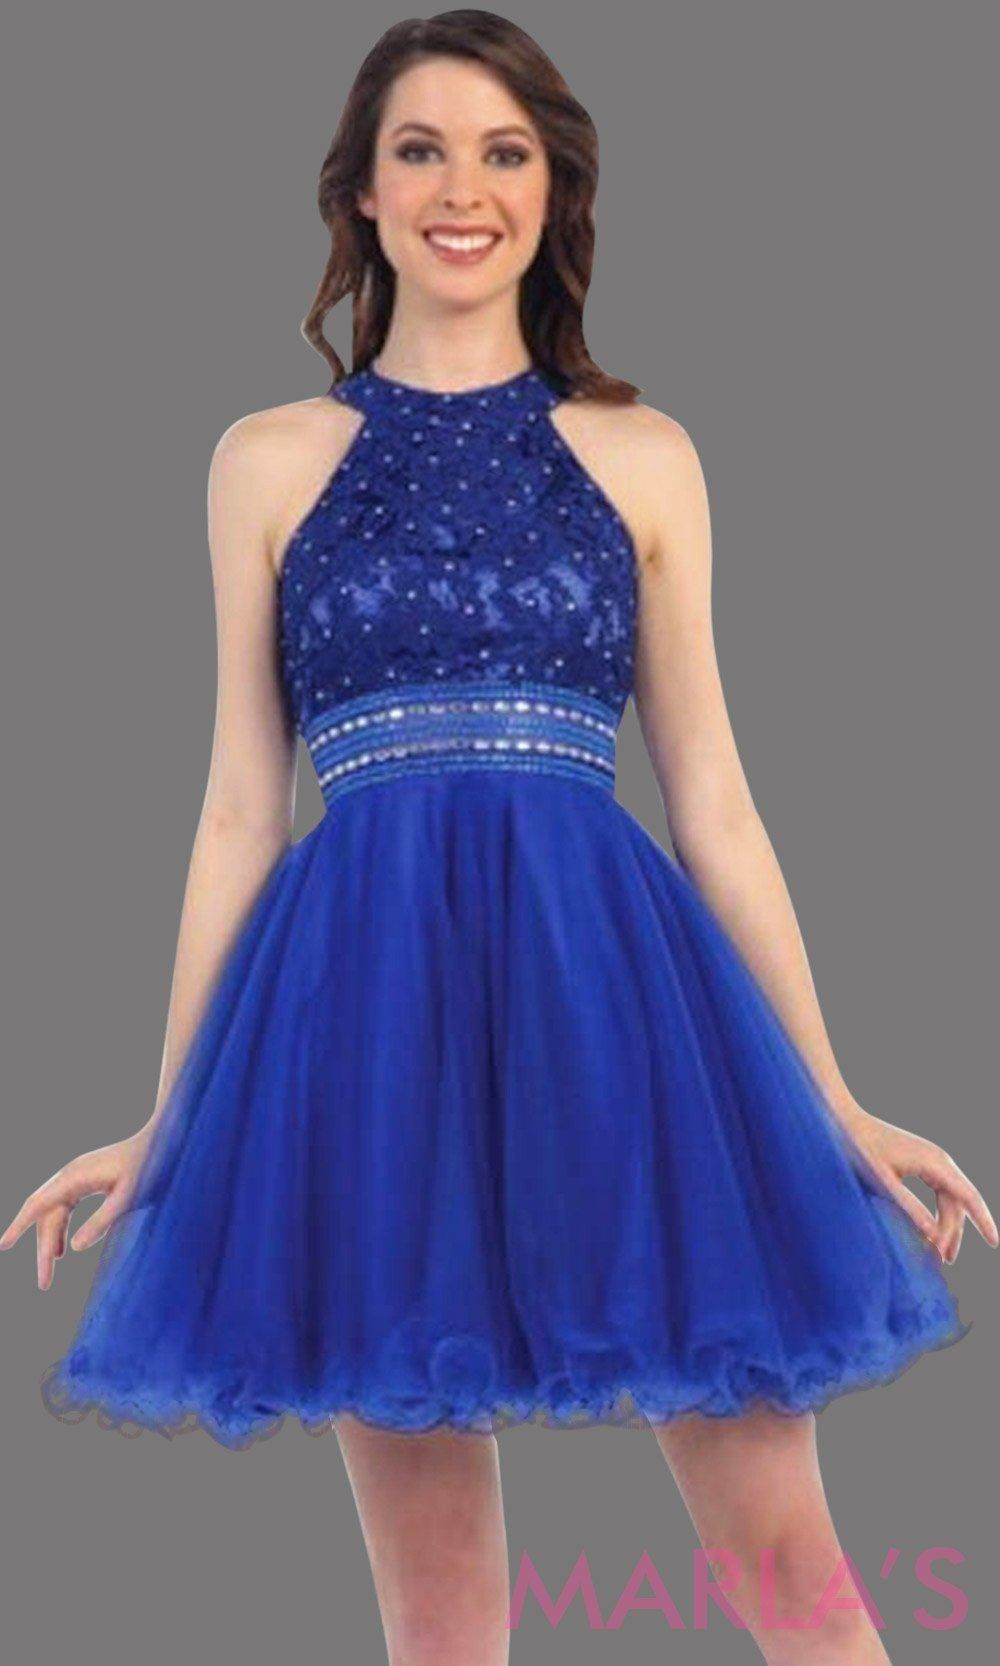 824699b24a2 Short royal blue high neck graduation dress with beaded waist. It has puffy  tulle skirt. Perfect for grade 8 grad